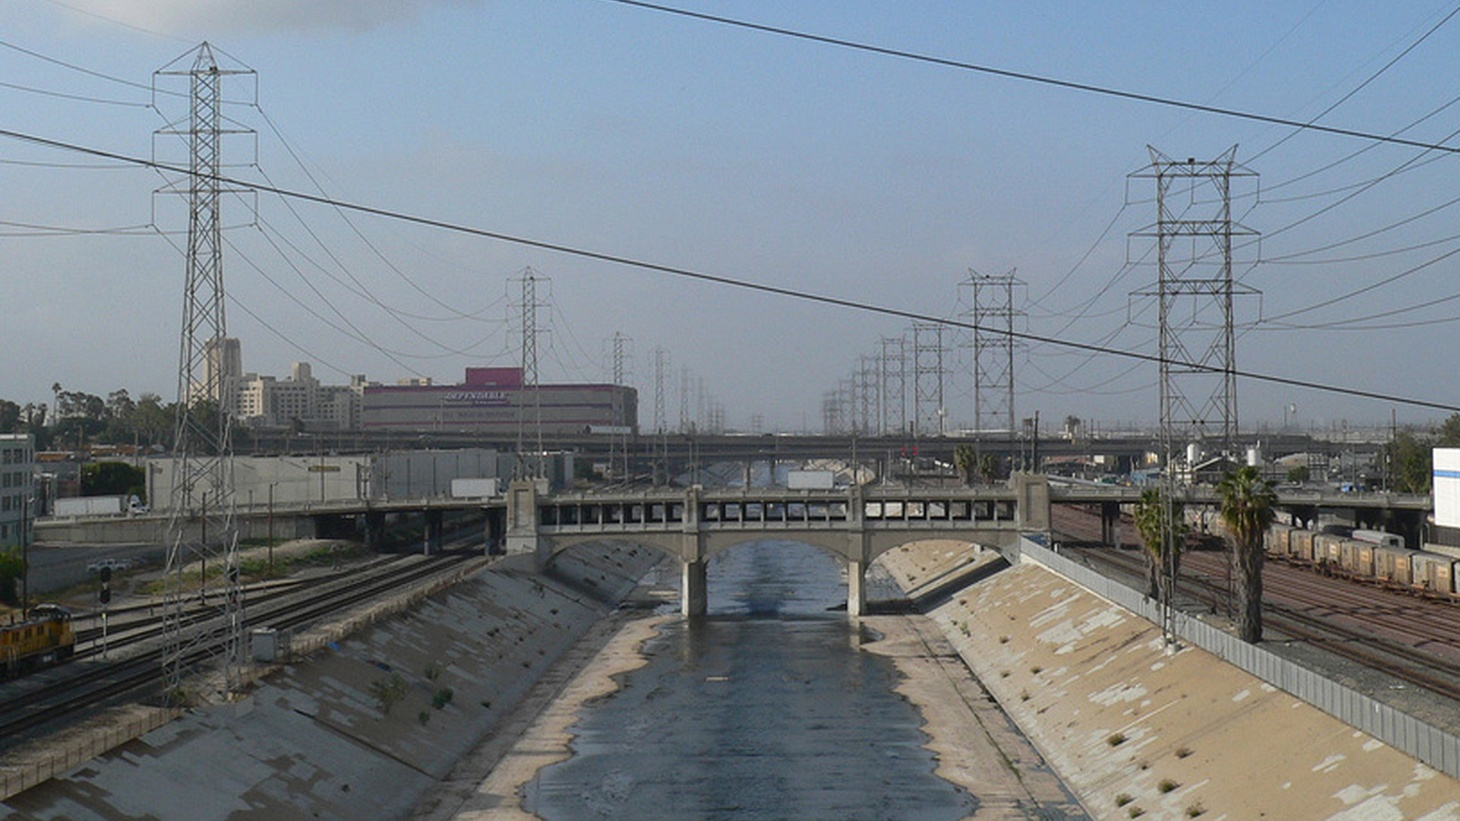 Frank Gehry is masterplanning the LA River. Why? DnA explores the reaction at the selection as well the political, design and water reclamation stakes with Frank Gehry and others.